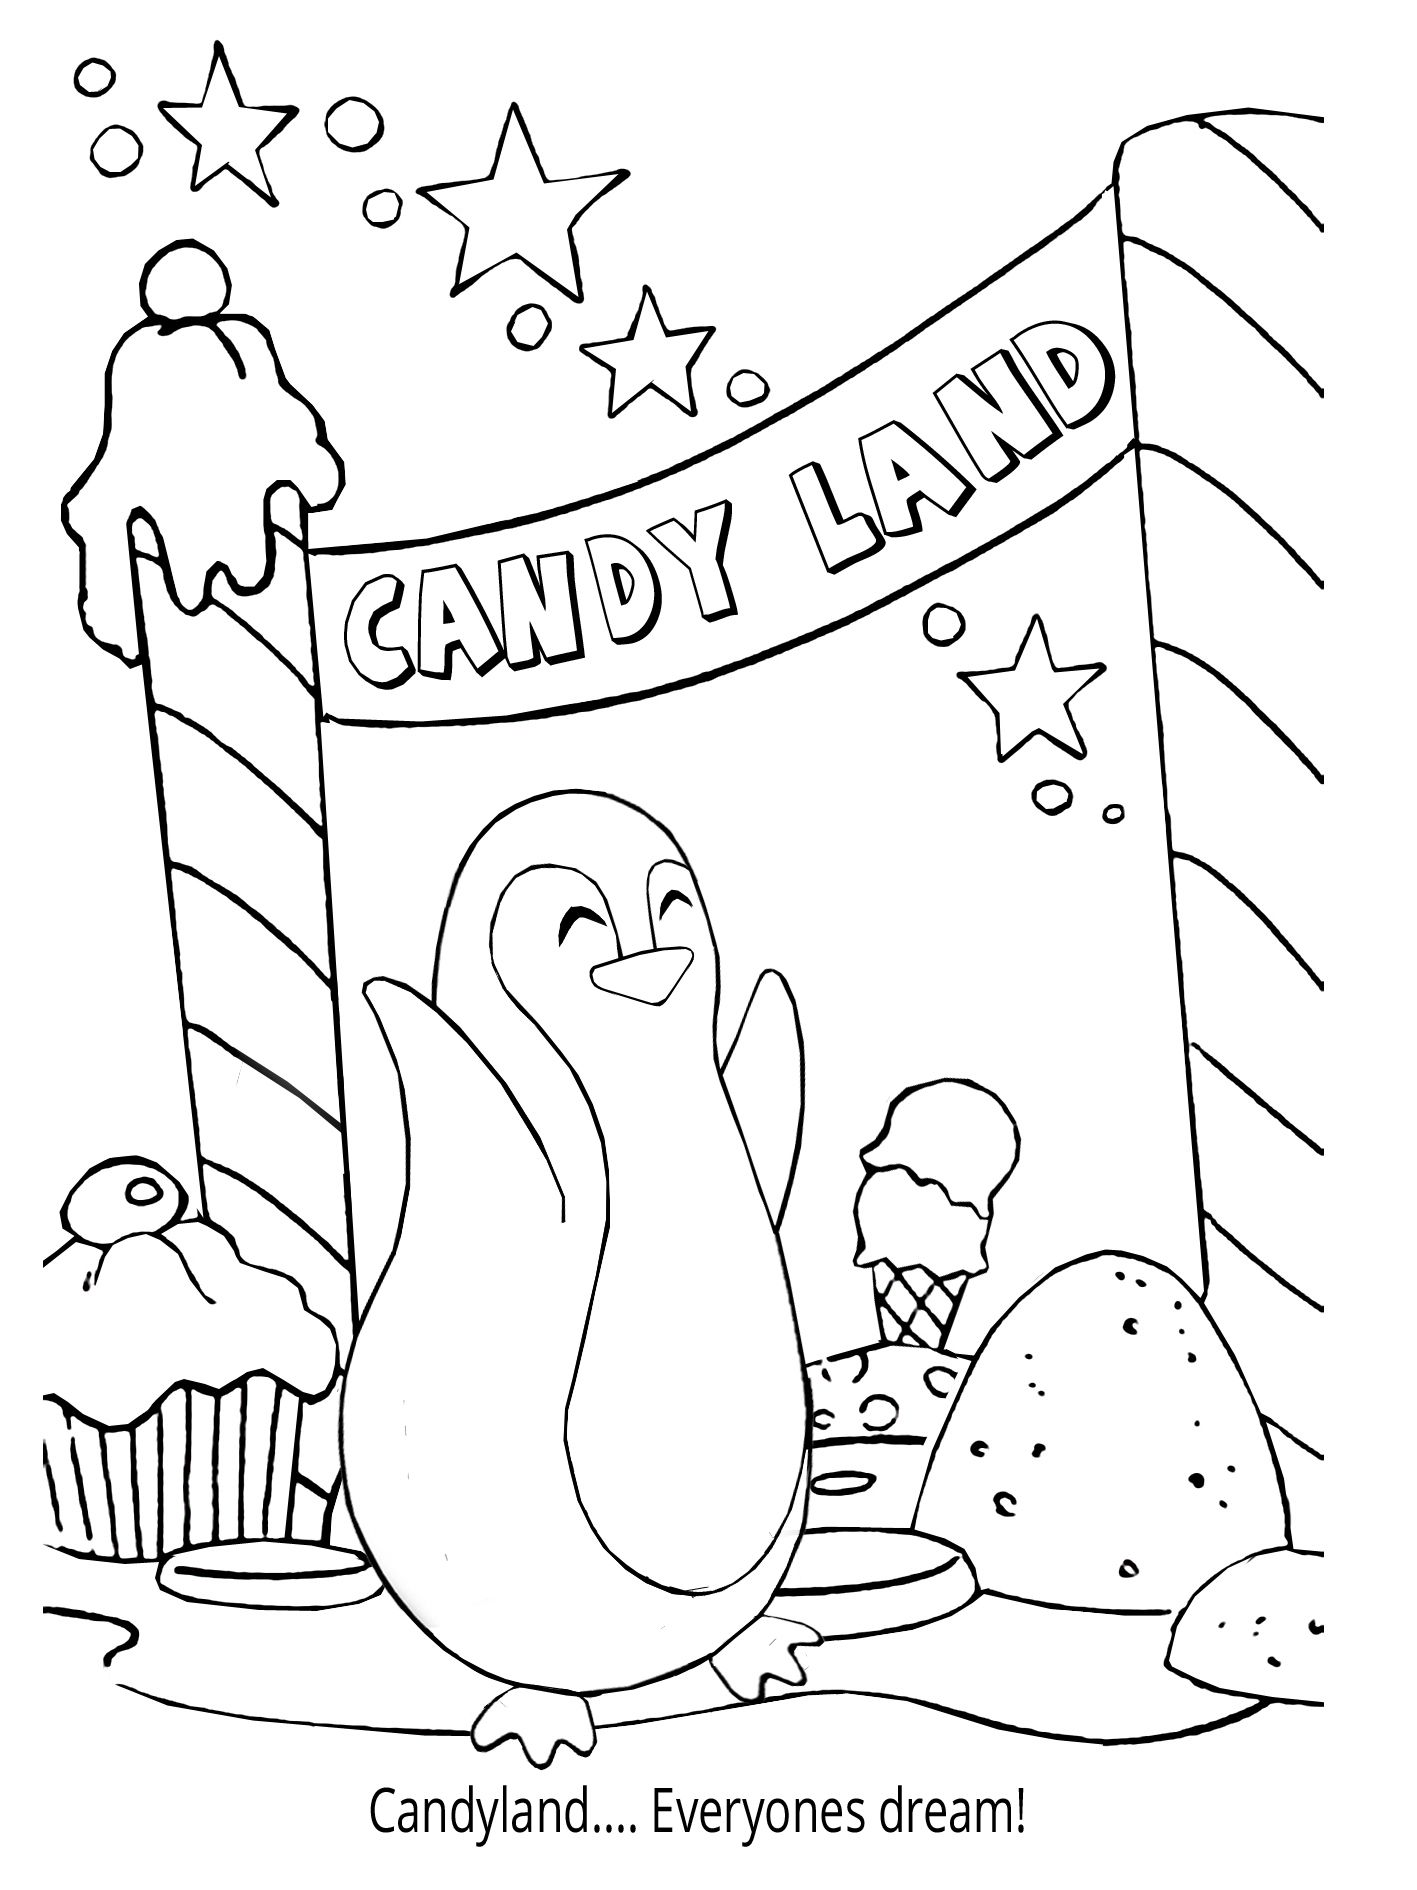 Penguin Coloring Book - Mr. Chil welcome you to Candyland! Join him ...